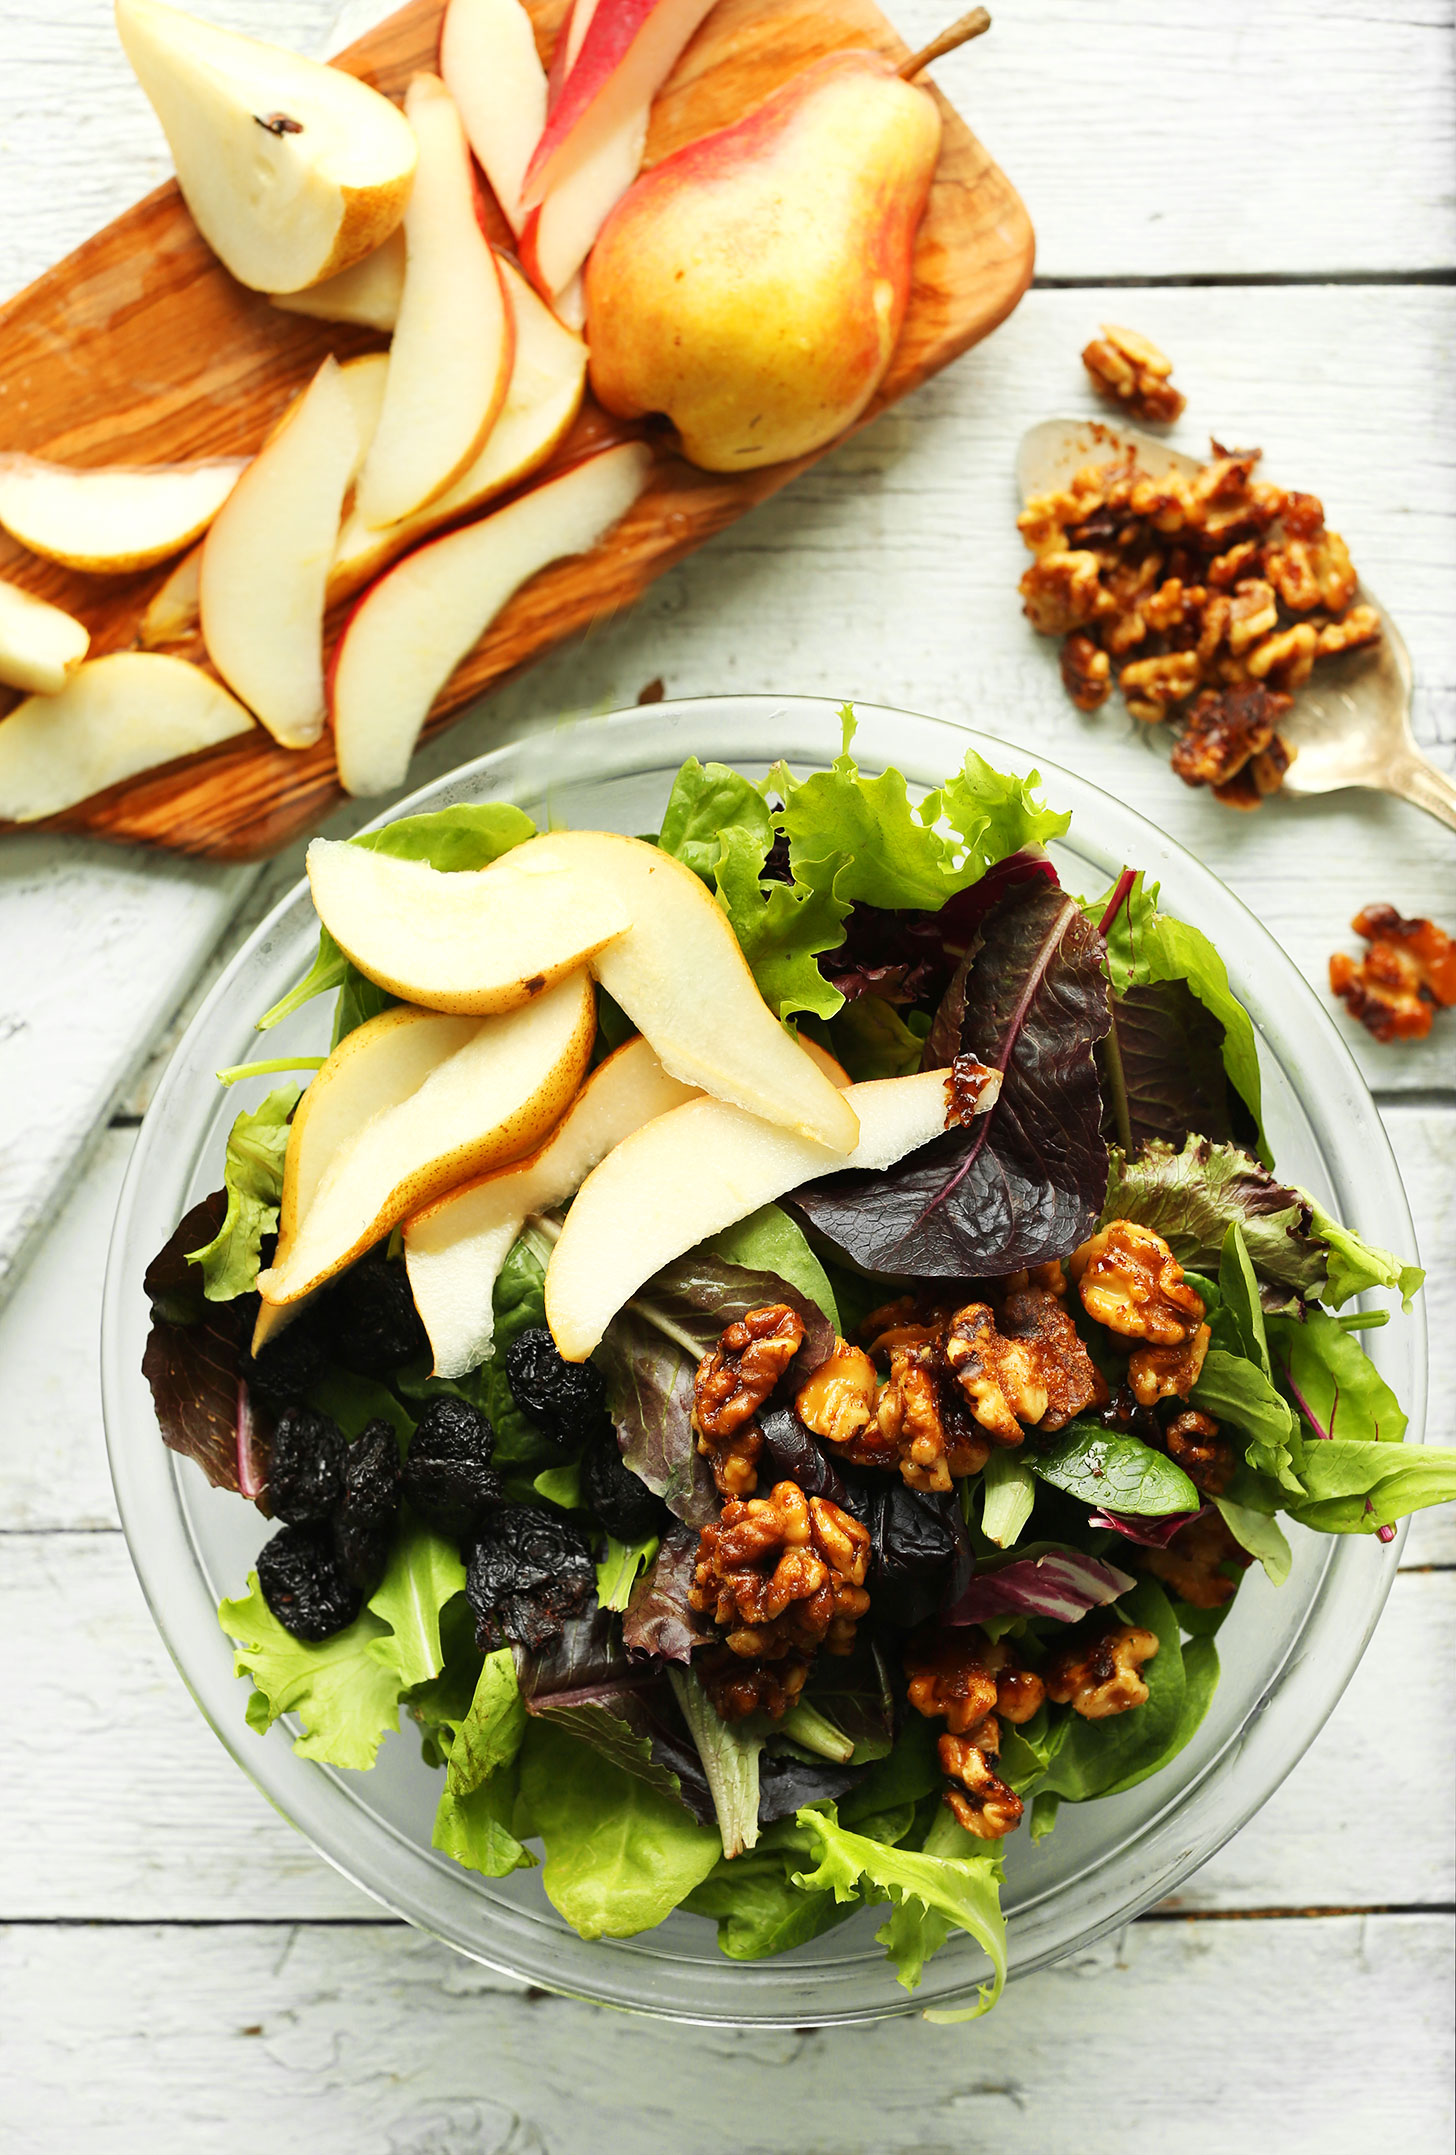 Bowl of our gluten-free vegan Pear Salad with Dried Cherries and Candied Walnuts